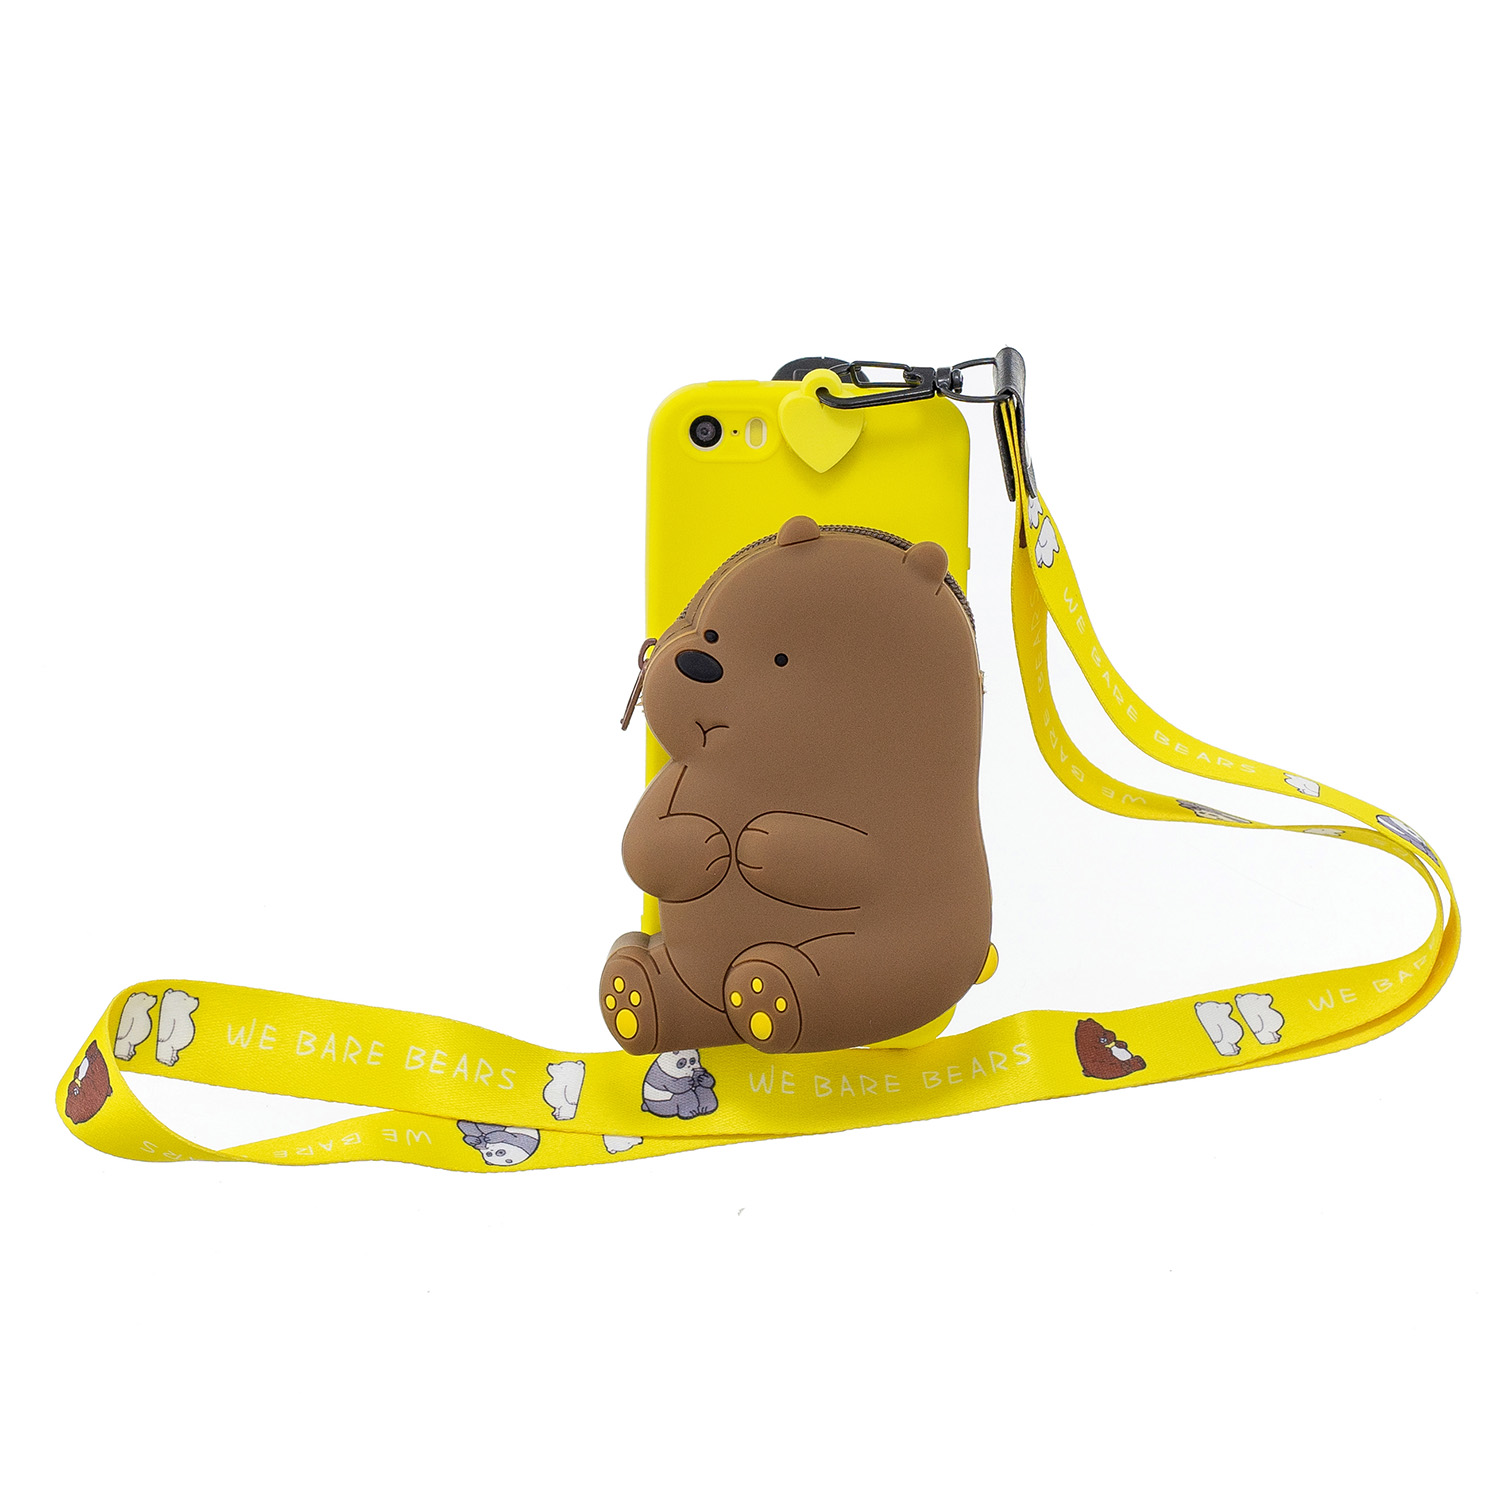 For Iphone 5 / 5S / SE Cartoon Hanging Lanyard + Fall Resistant Cartoon TPU Full Protective Mobile Phone Cover with Coin Purse 1 yellow brown bear